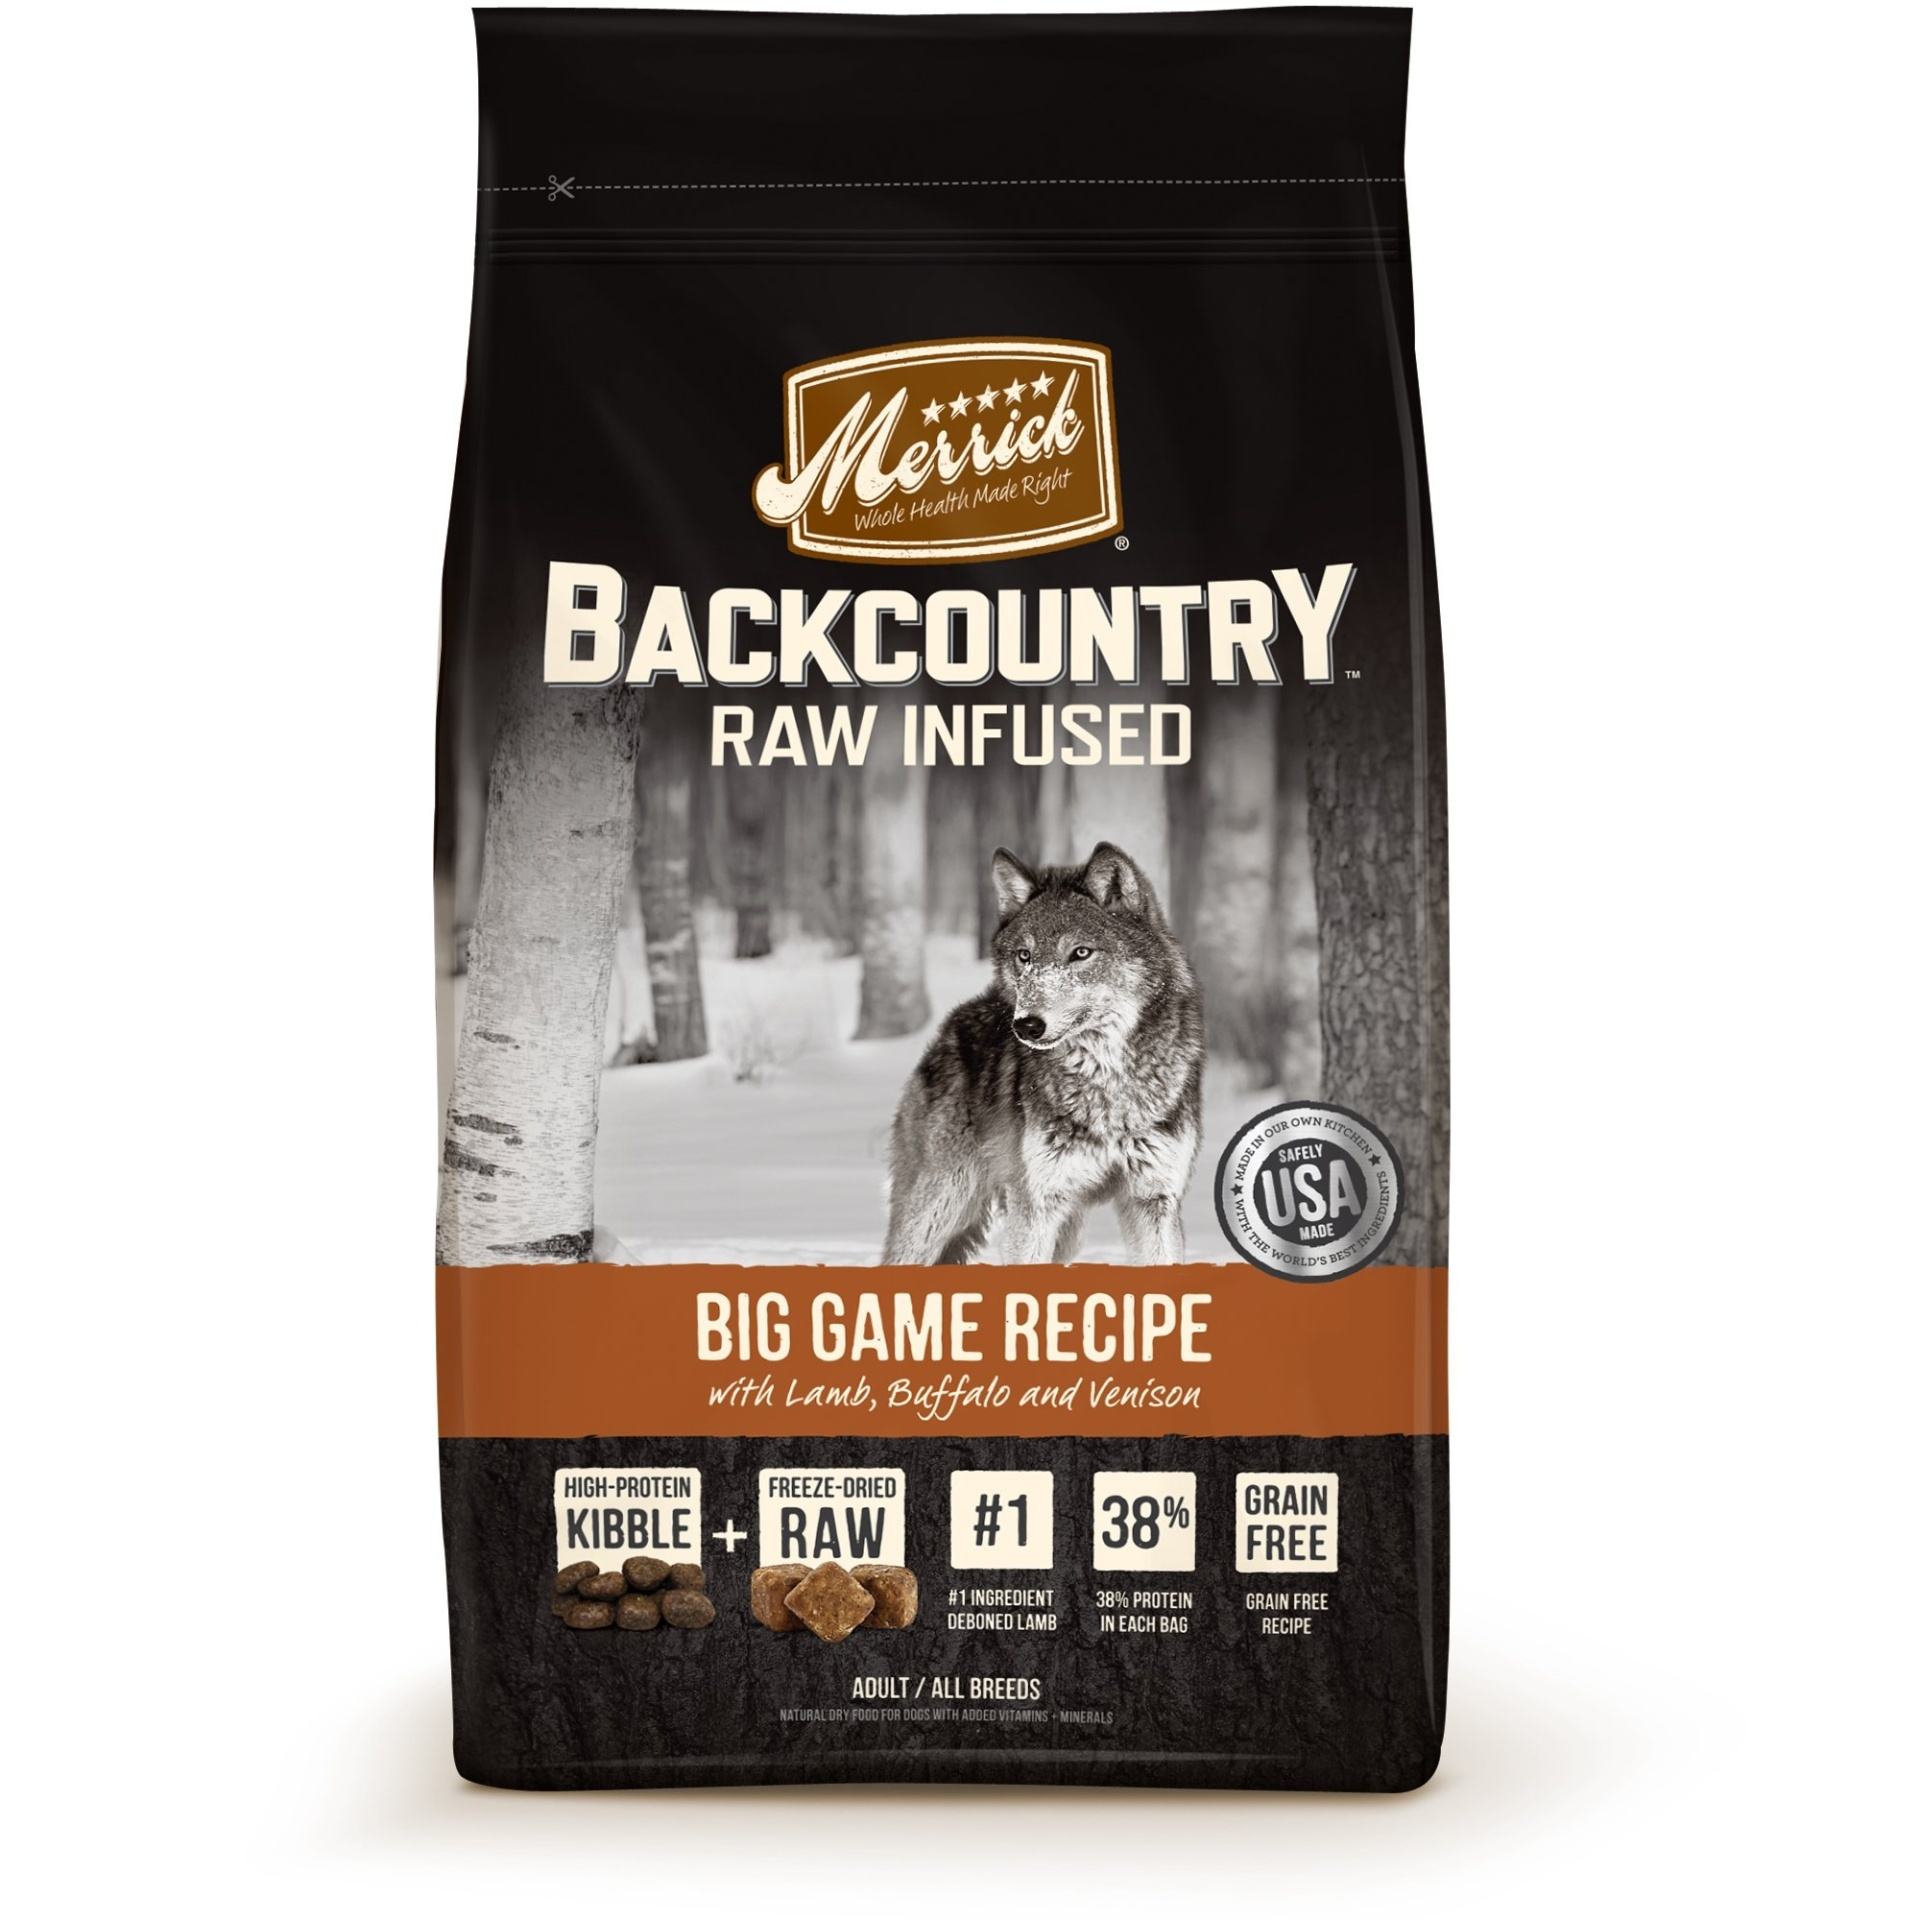 slide 1 of 1, Merrick Backcountry Grain Free Raw Infused Big Game Dry Dog Food,